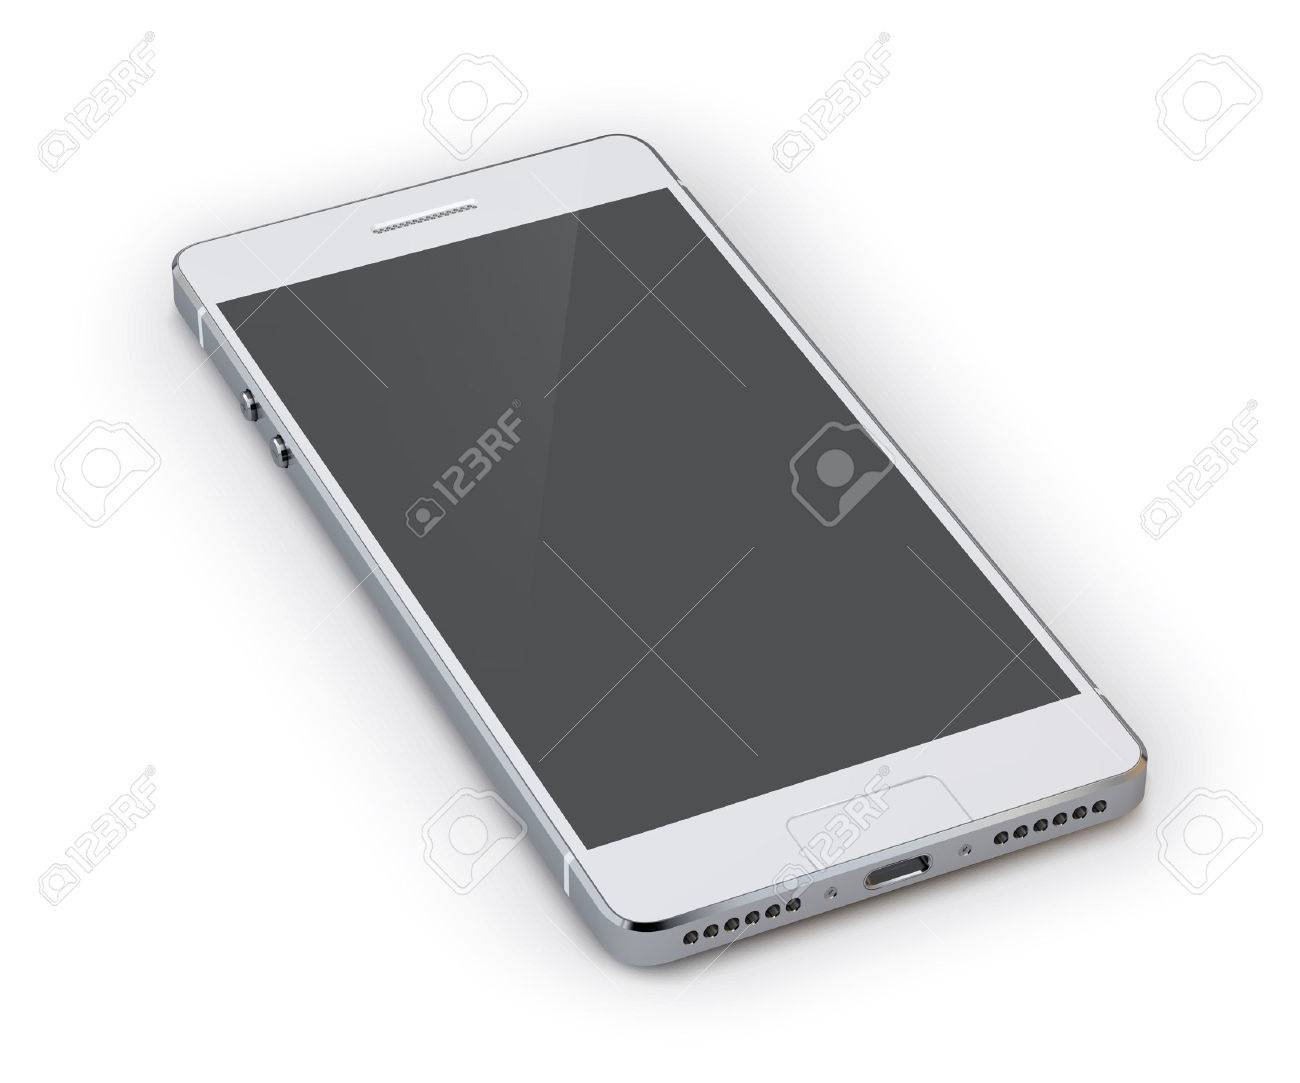 Realistic 3d grey smartphone device isolated on white background vector illustration - 37344331